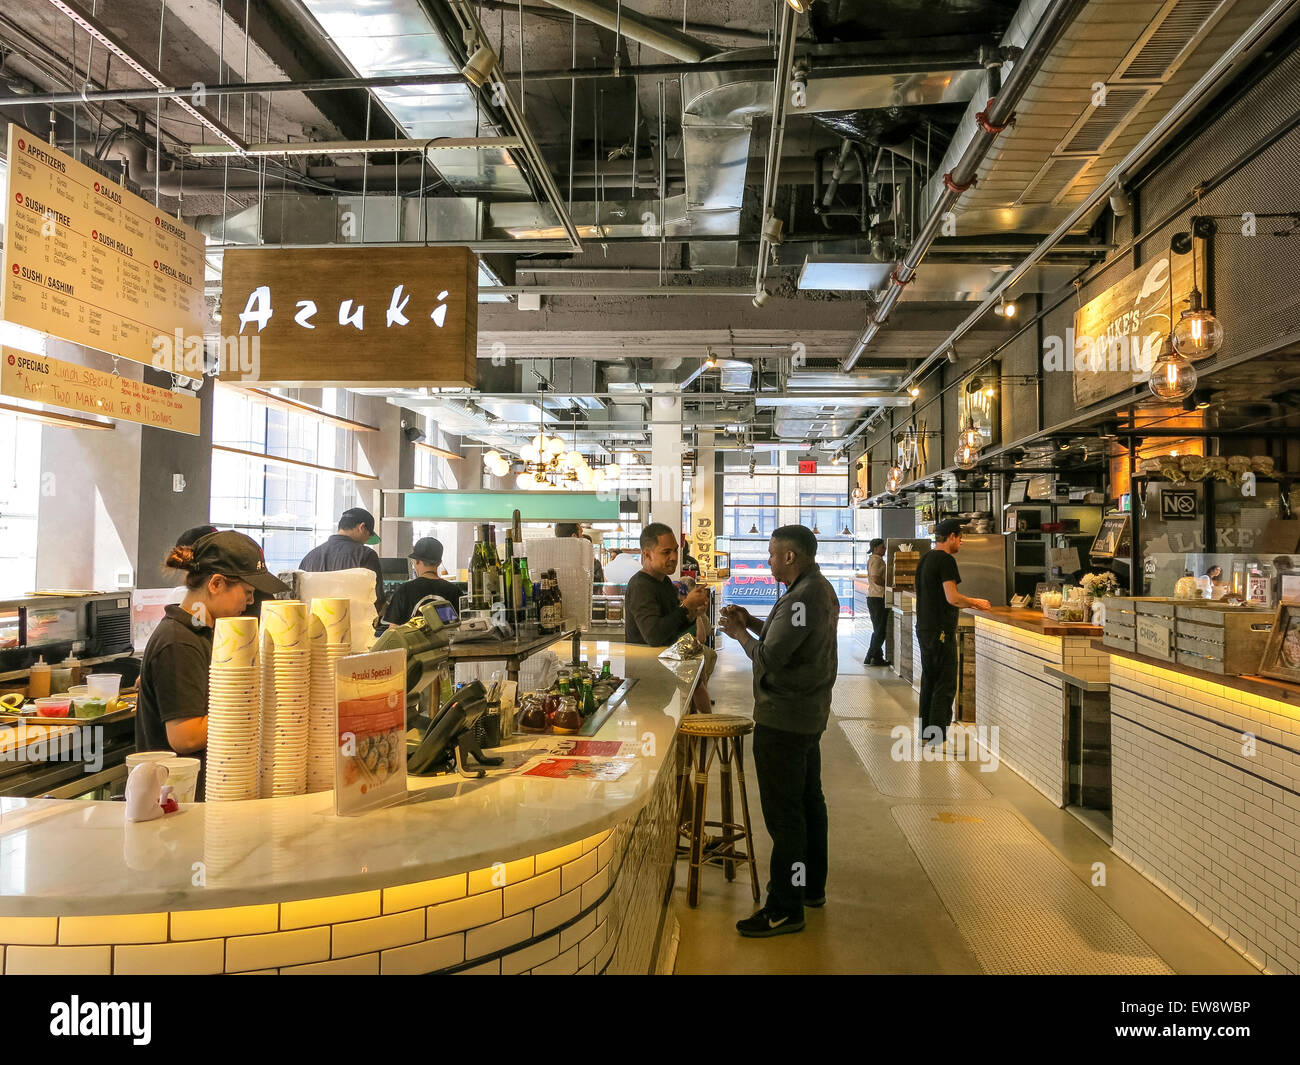 City Kitchen Food Market Times Square NYC Stock Photo 84403418  Alamy